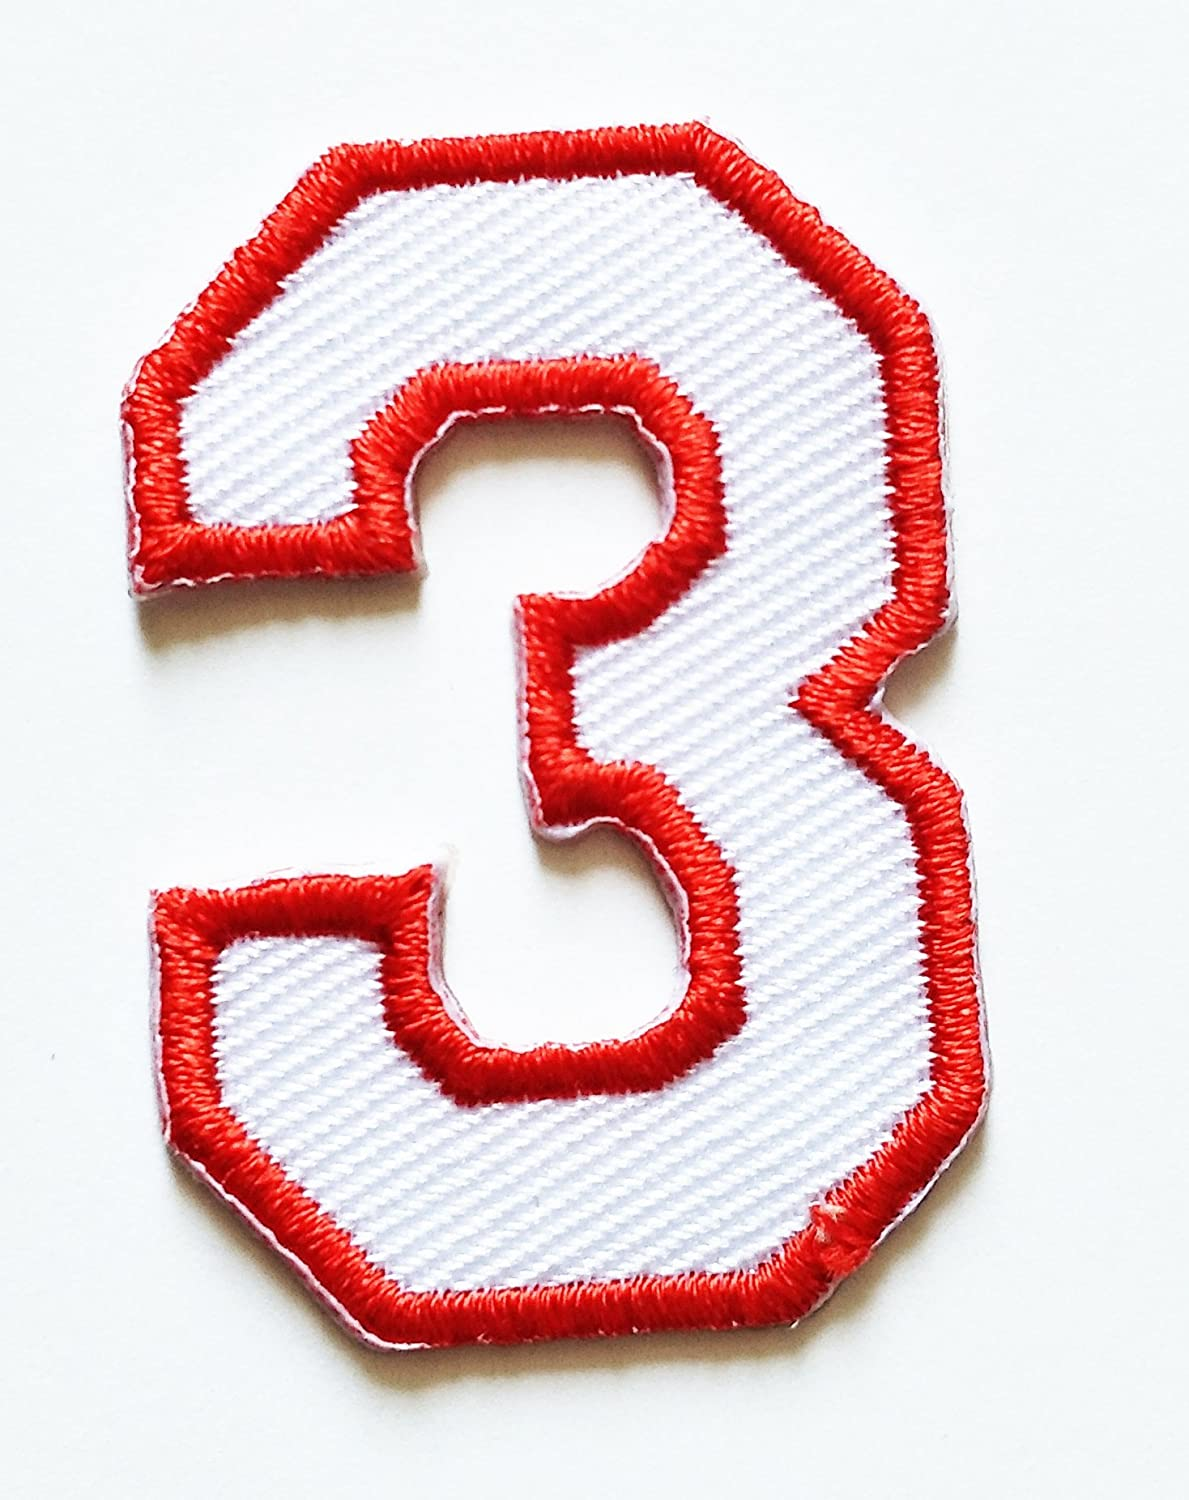 HHO White Red Number 3 No 3 math counting no 3 school Patch Embroidered DIY Patches, Cute Applique Sew Iron on Kids Craft Patch for Bags Jackets Jeans Clothess